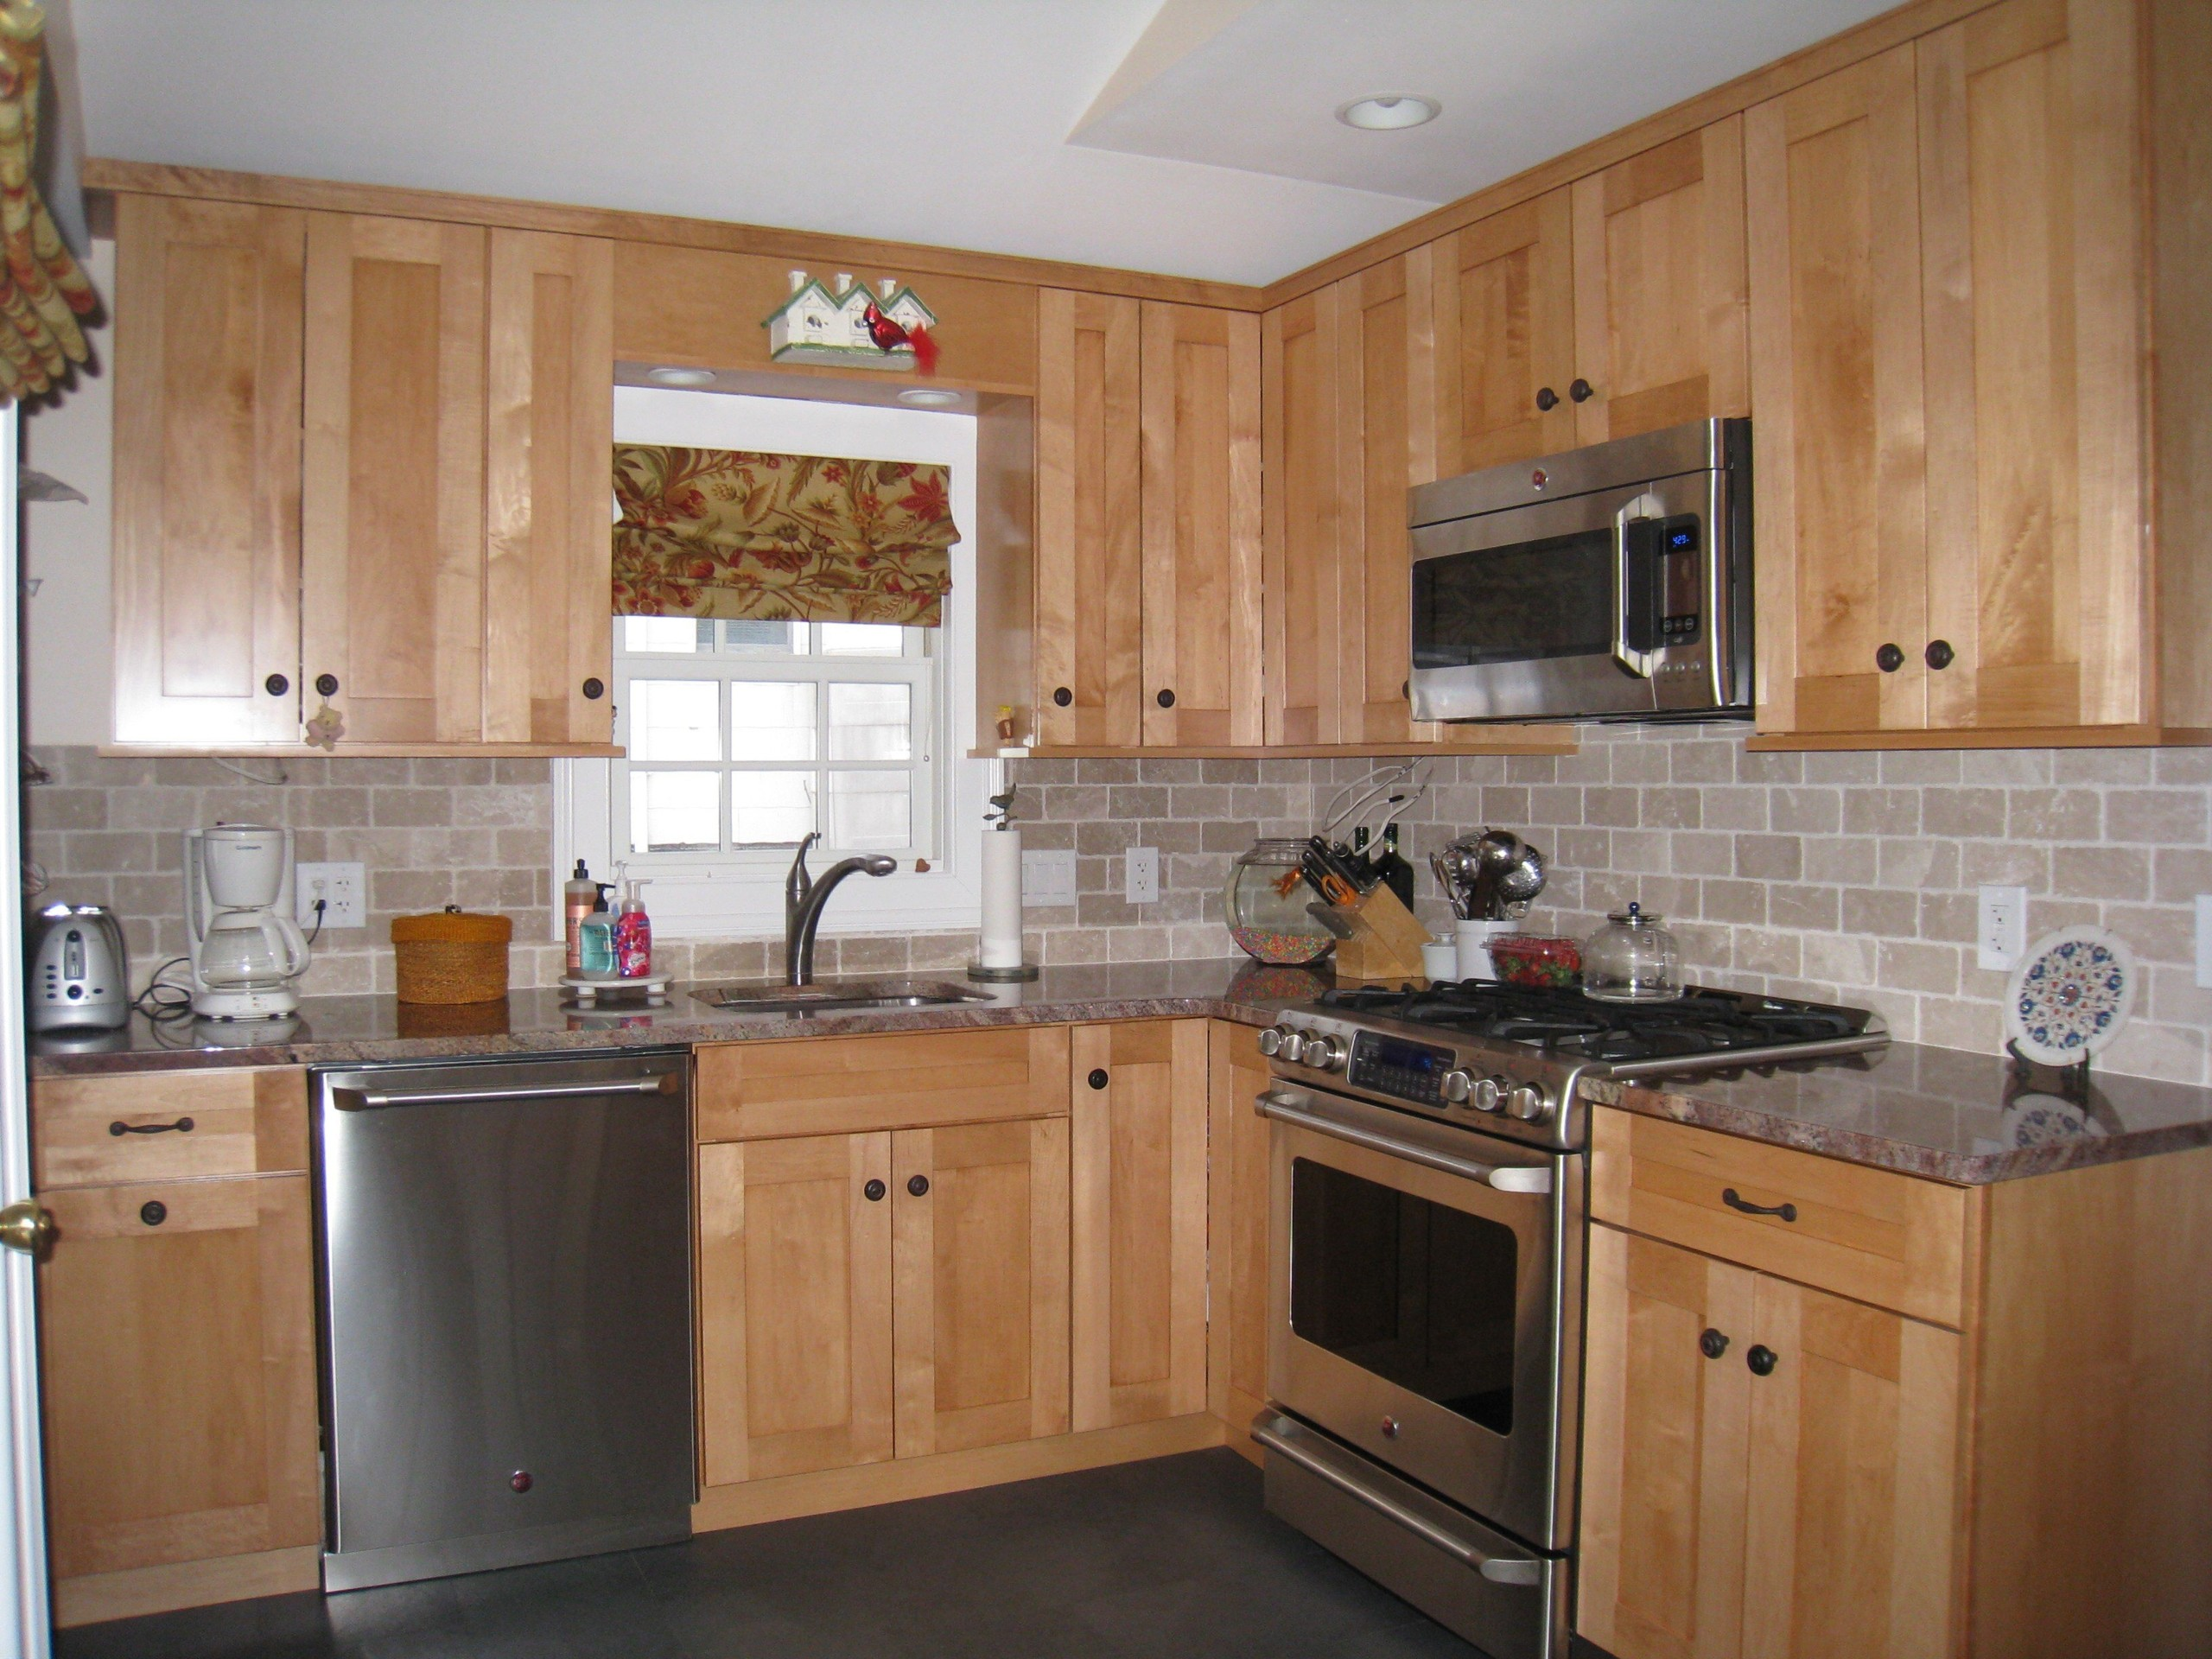 Maple Cabinets - Ideas on Foter on Natural Maple Kitchen Backsplash Ideas With Maple Cabinets  id=33678